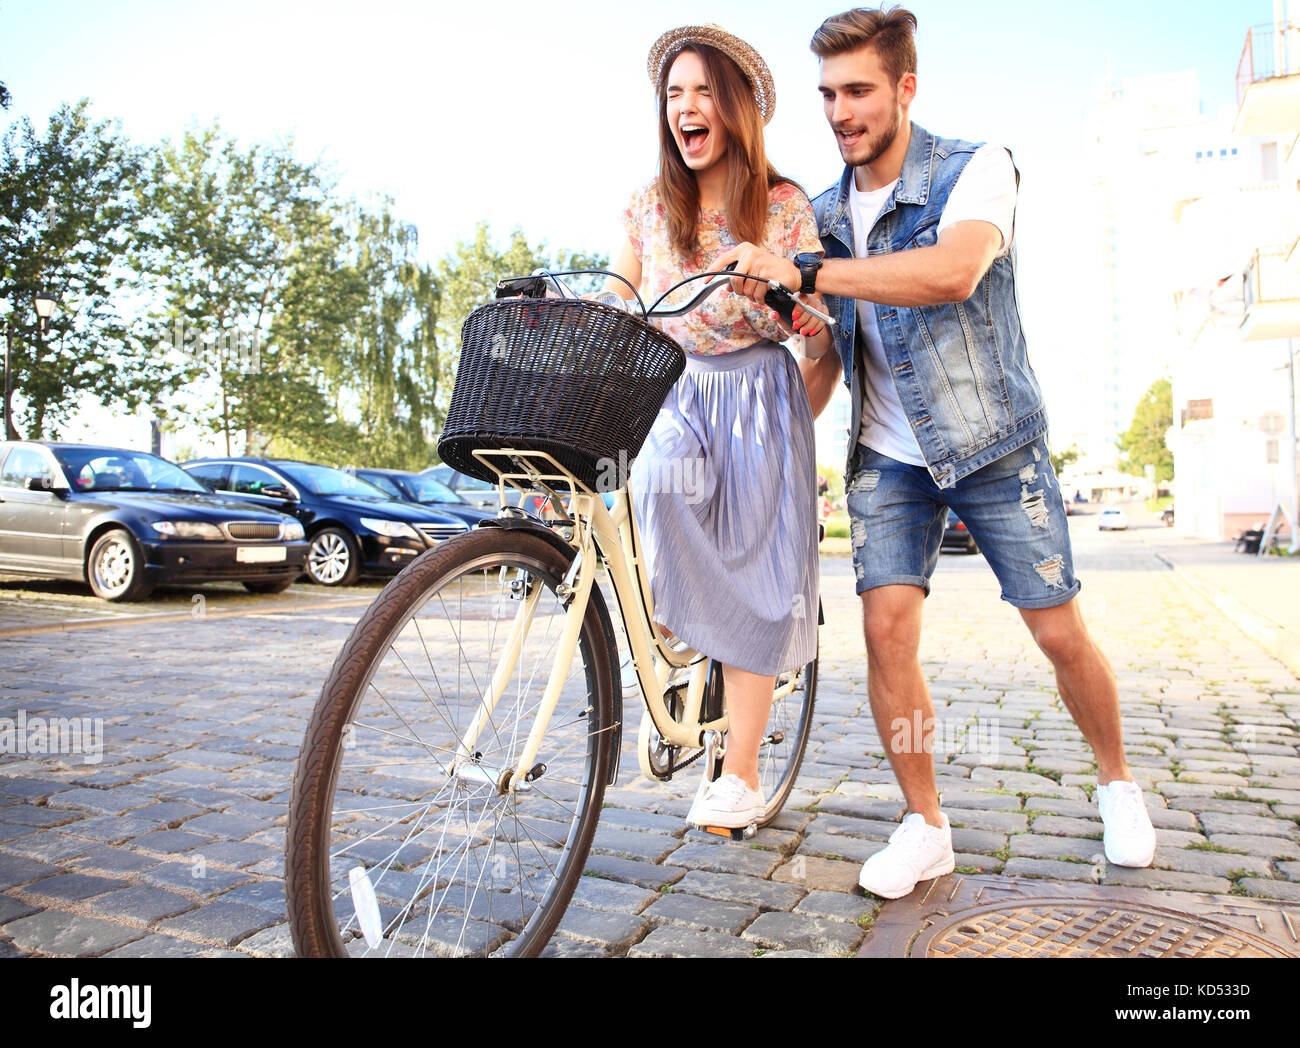 Happy young couple going for a bike ride on a summer day in the city.They are having fun together. Stock Photo